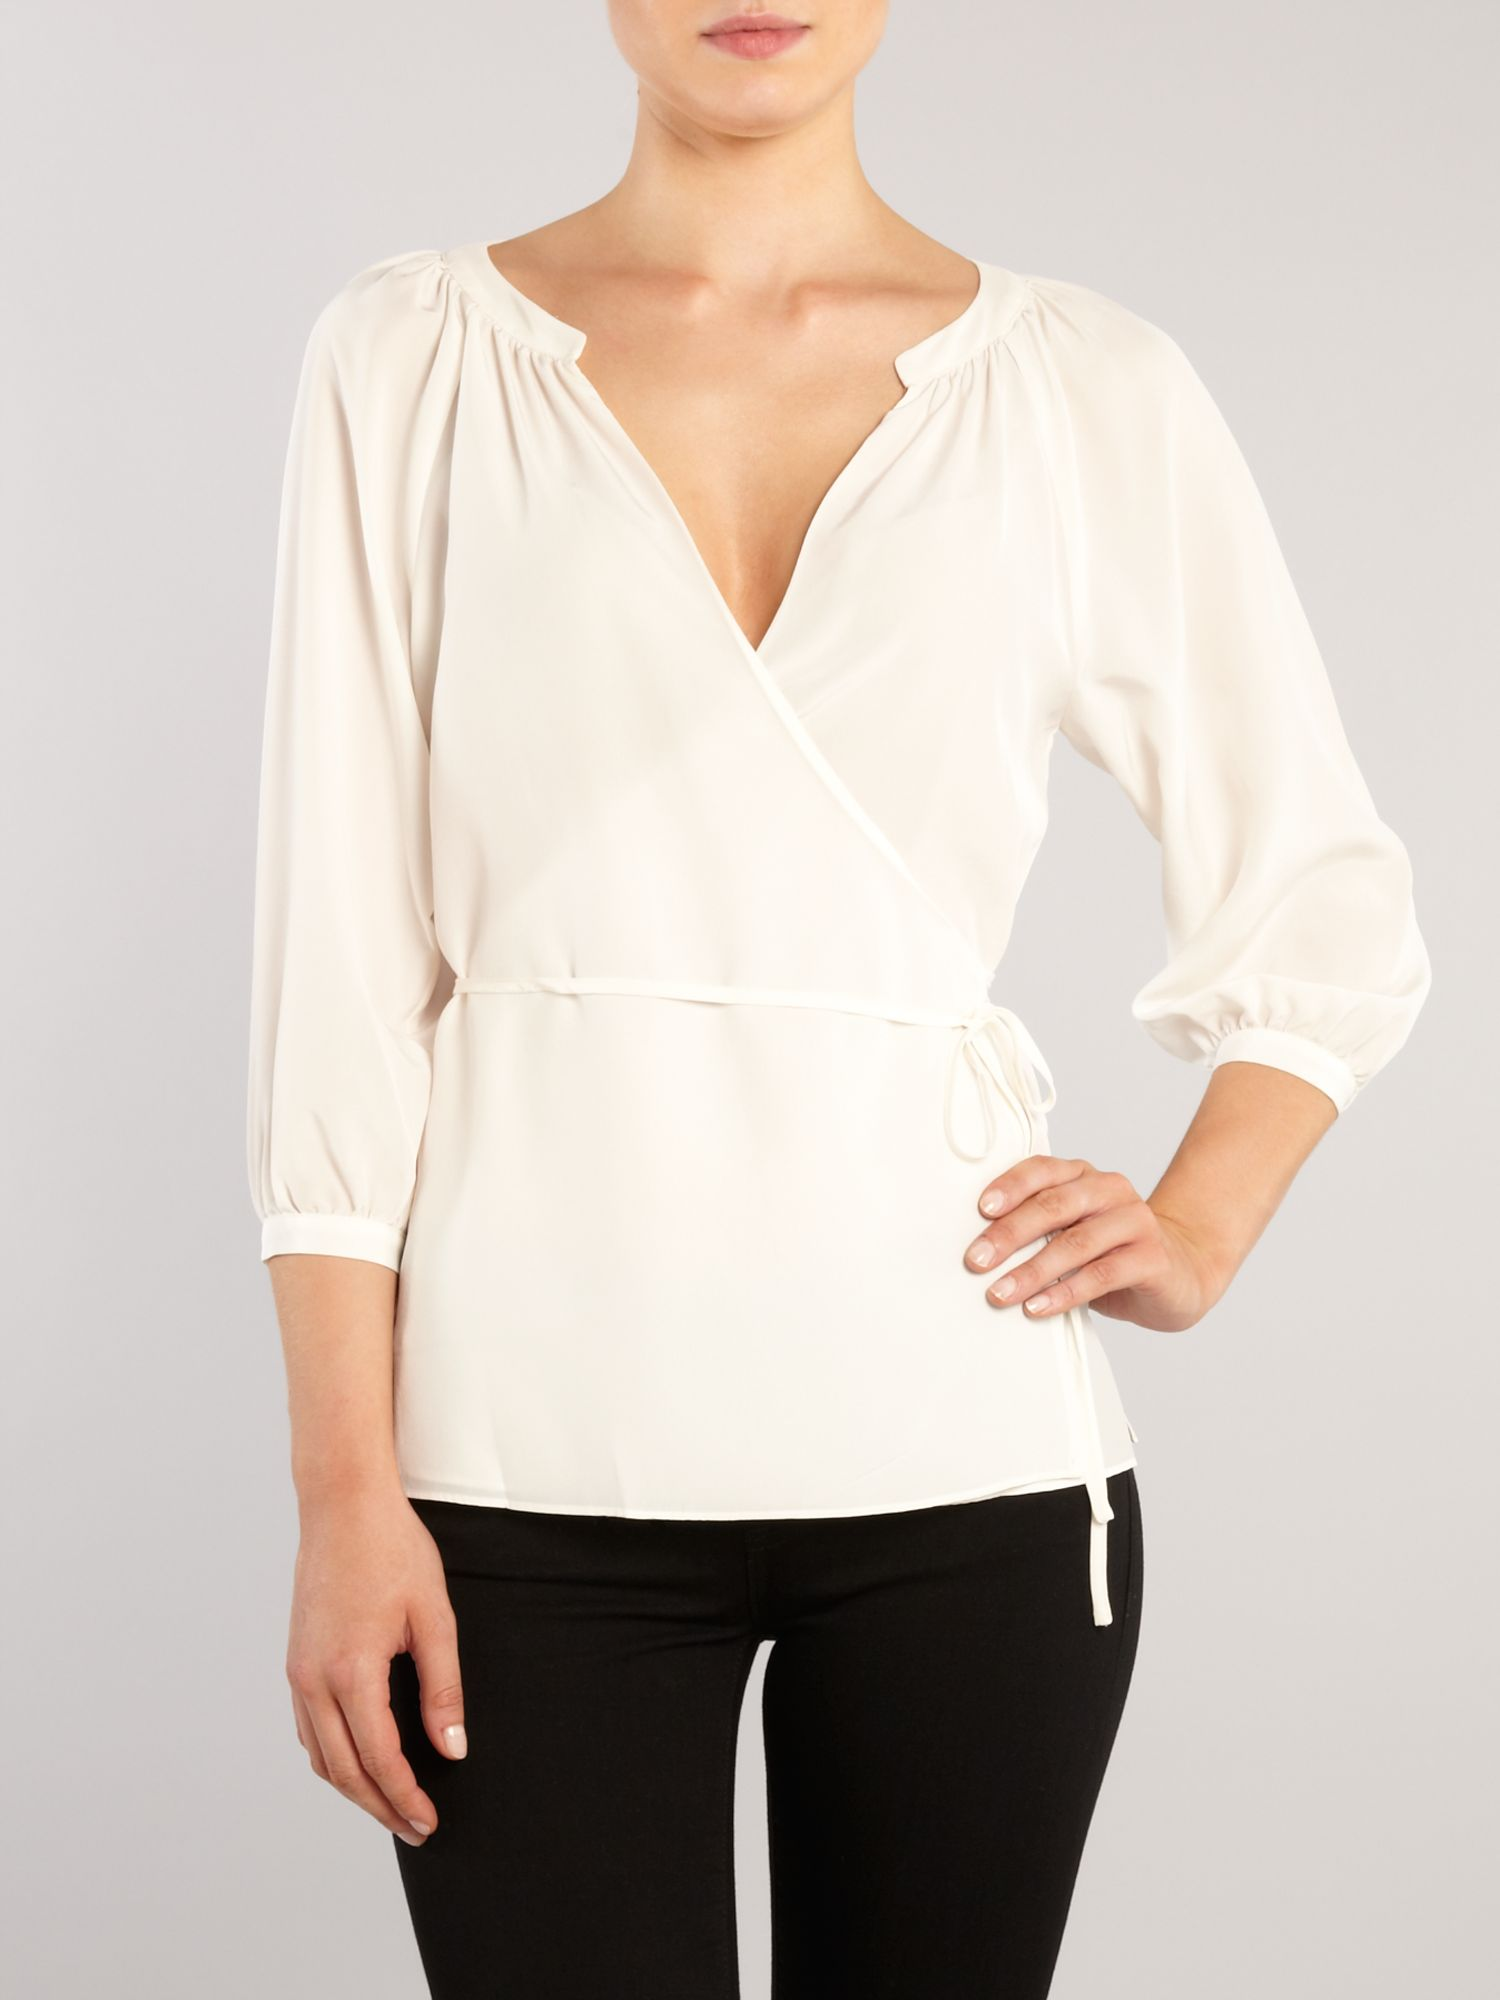 Lauren by ralph lauren Kora Silk Wrap Blouse in White | Lyst